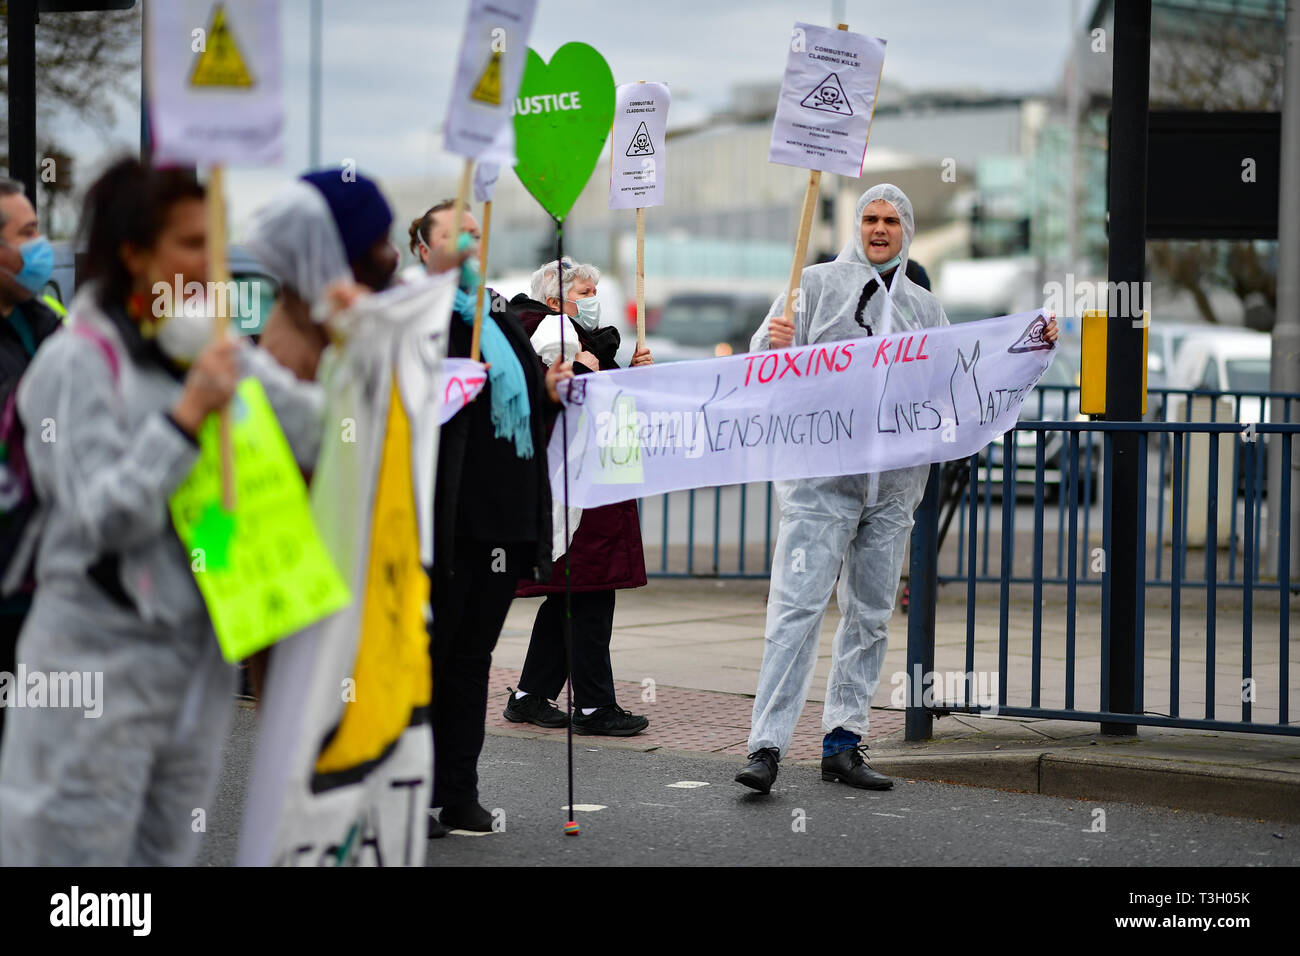 Activists in hazmat suits and masks stop traffic in west London in a protest accusing authorities of lying after cancer-causing chemicals were found in soil close to Grenfell Tower. - Stock Image